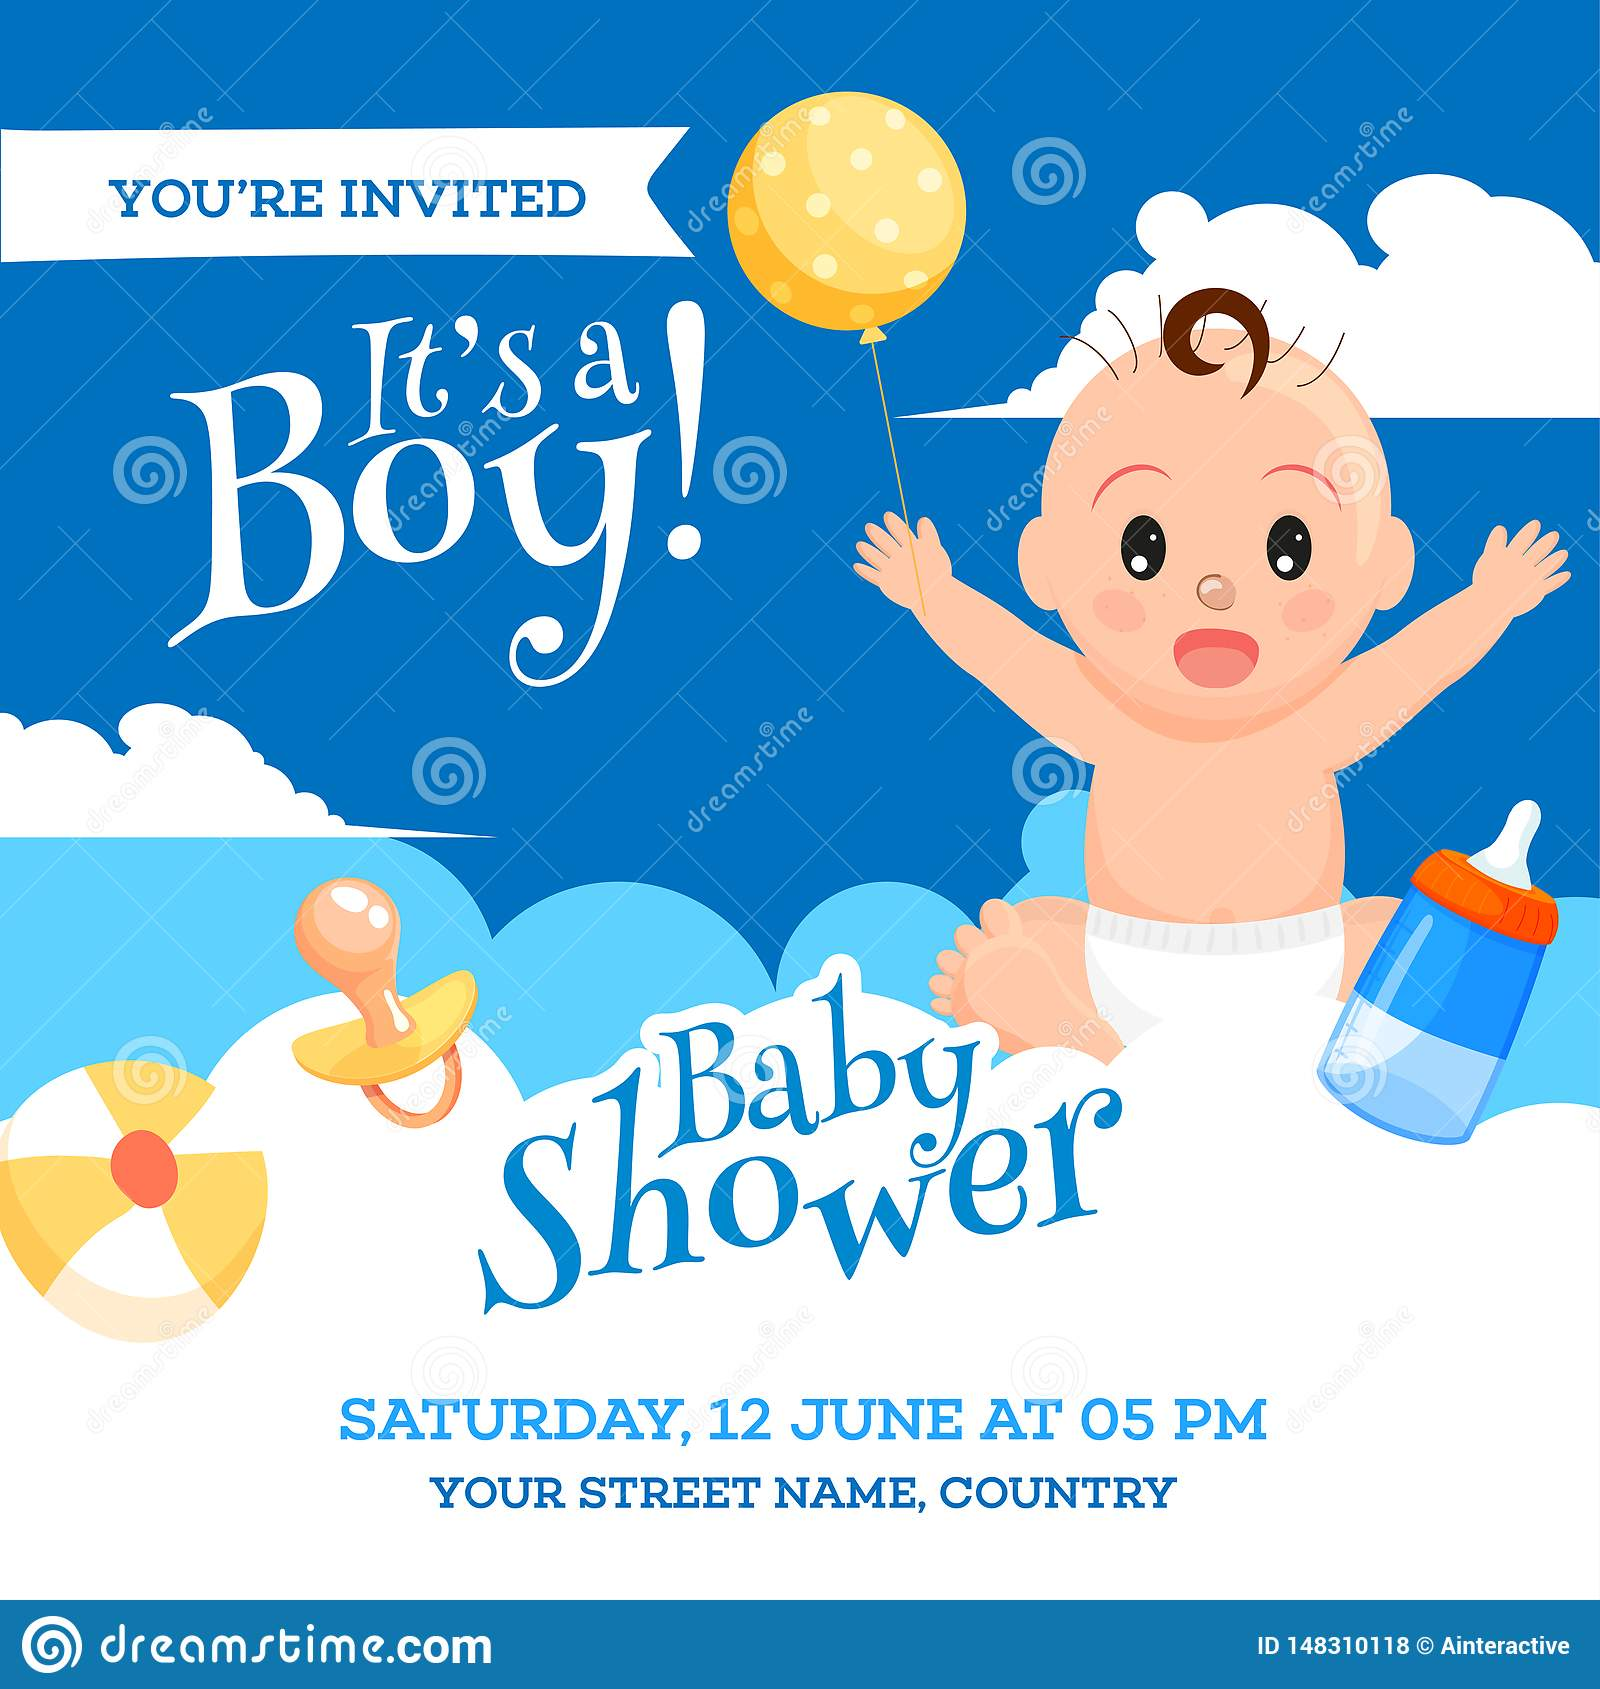 baby shower invitation card design with